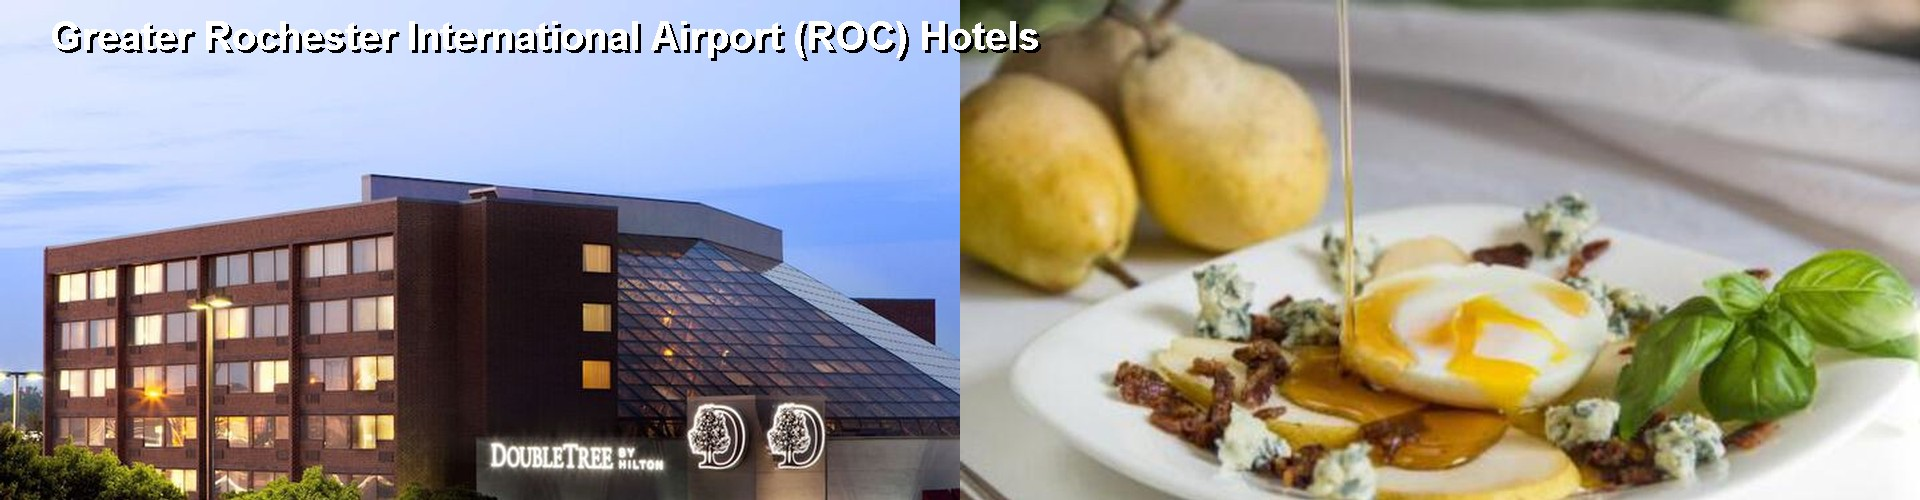 5 Best Hotels near Greater Rochester International Airport (ROC)